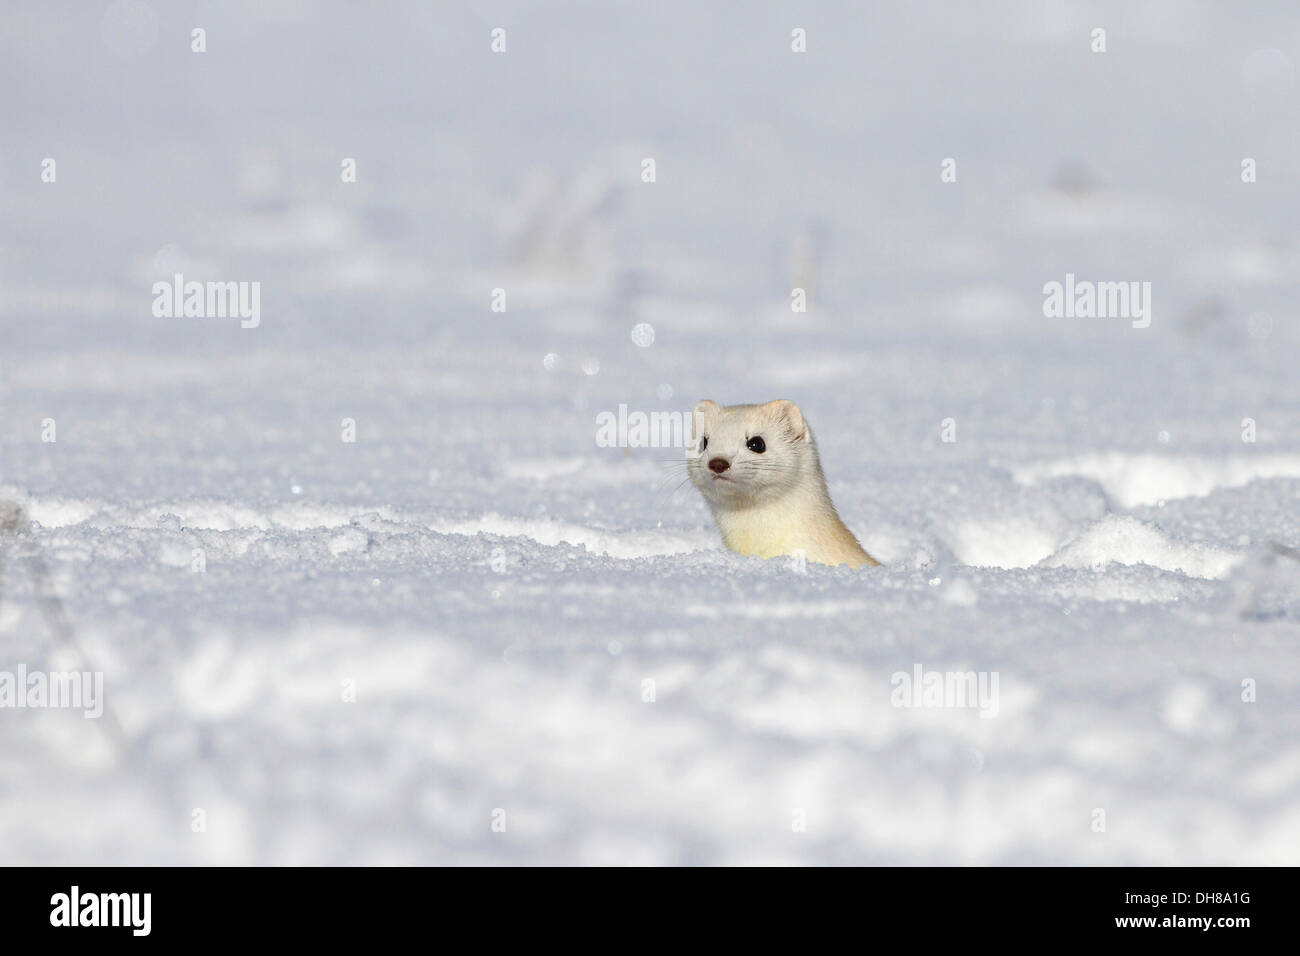 Stoat (Mustela erminea) with winter coat, Swabian Alps biosphere reserve, Baden-WuerttembergNON EXCLUSIVE USAGE FOR CALENDAR - Stock Image